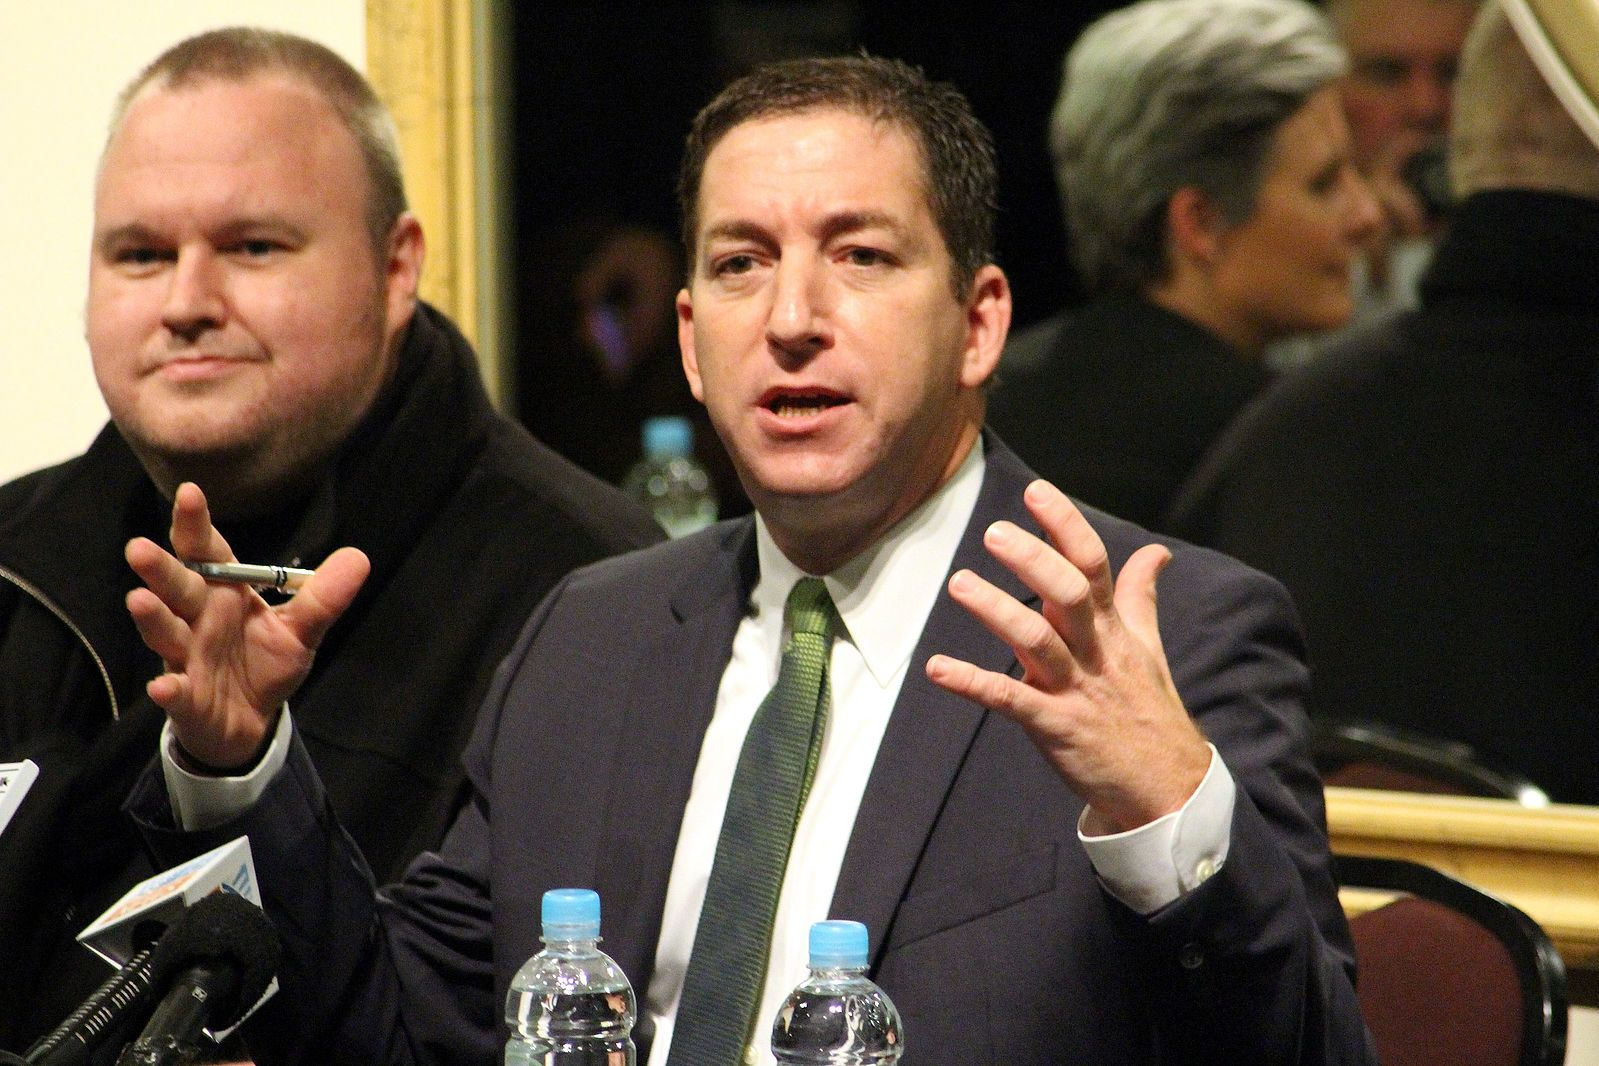 Glenn Greenwald speaking